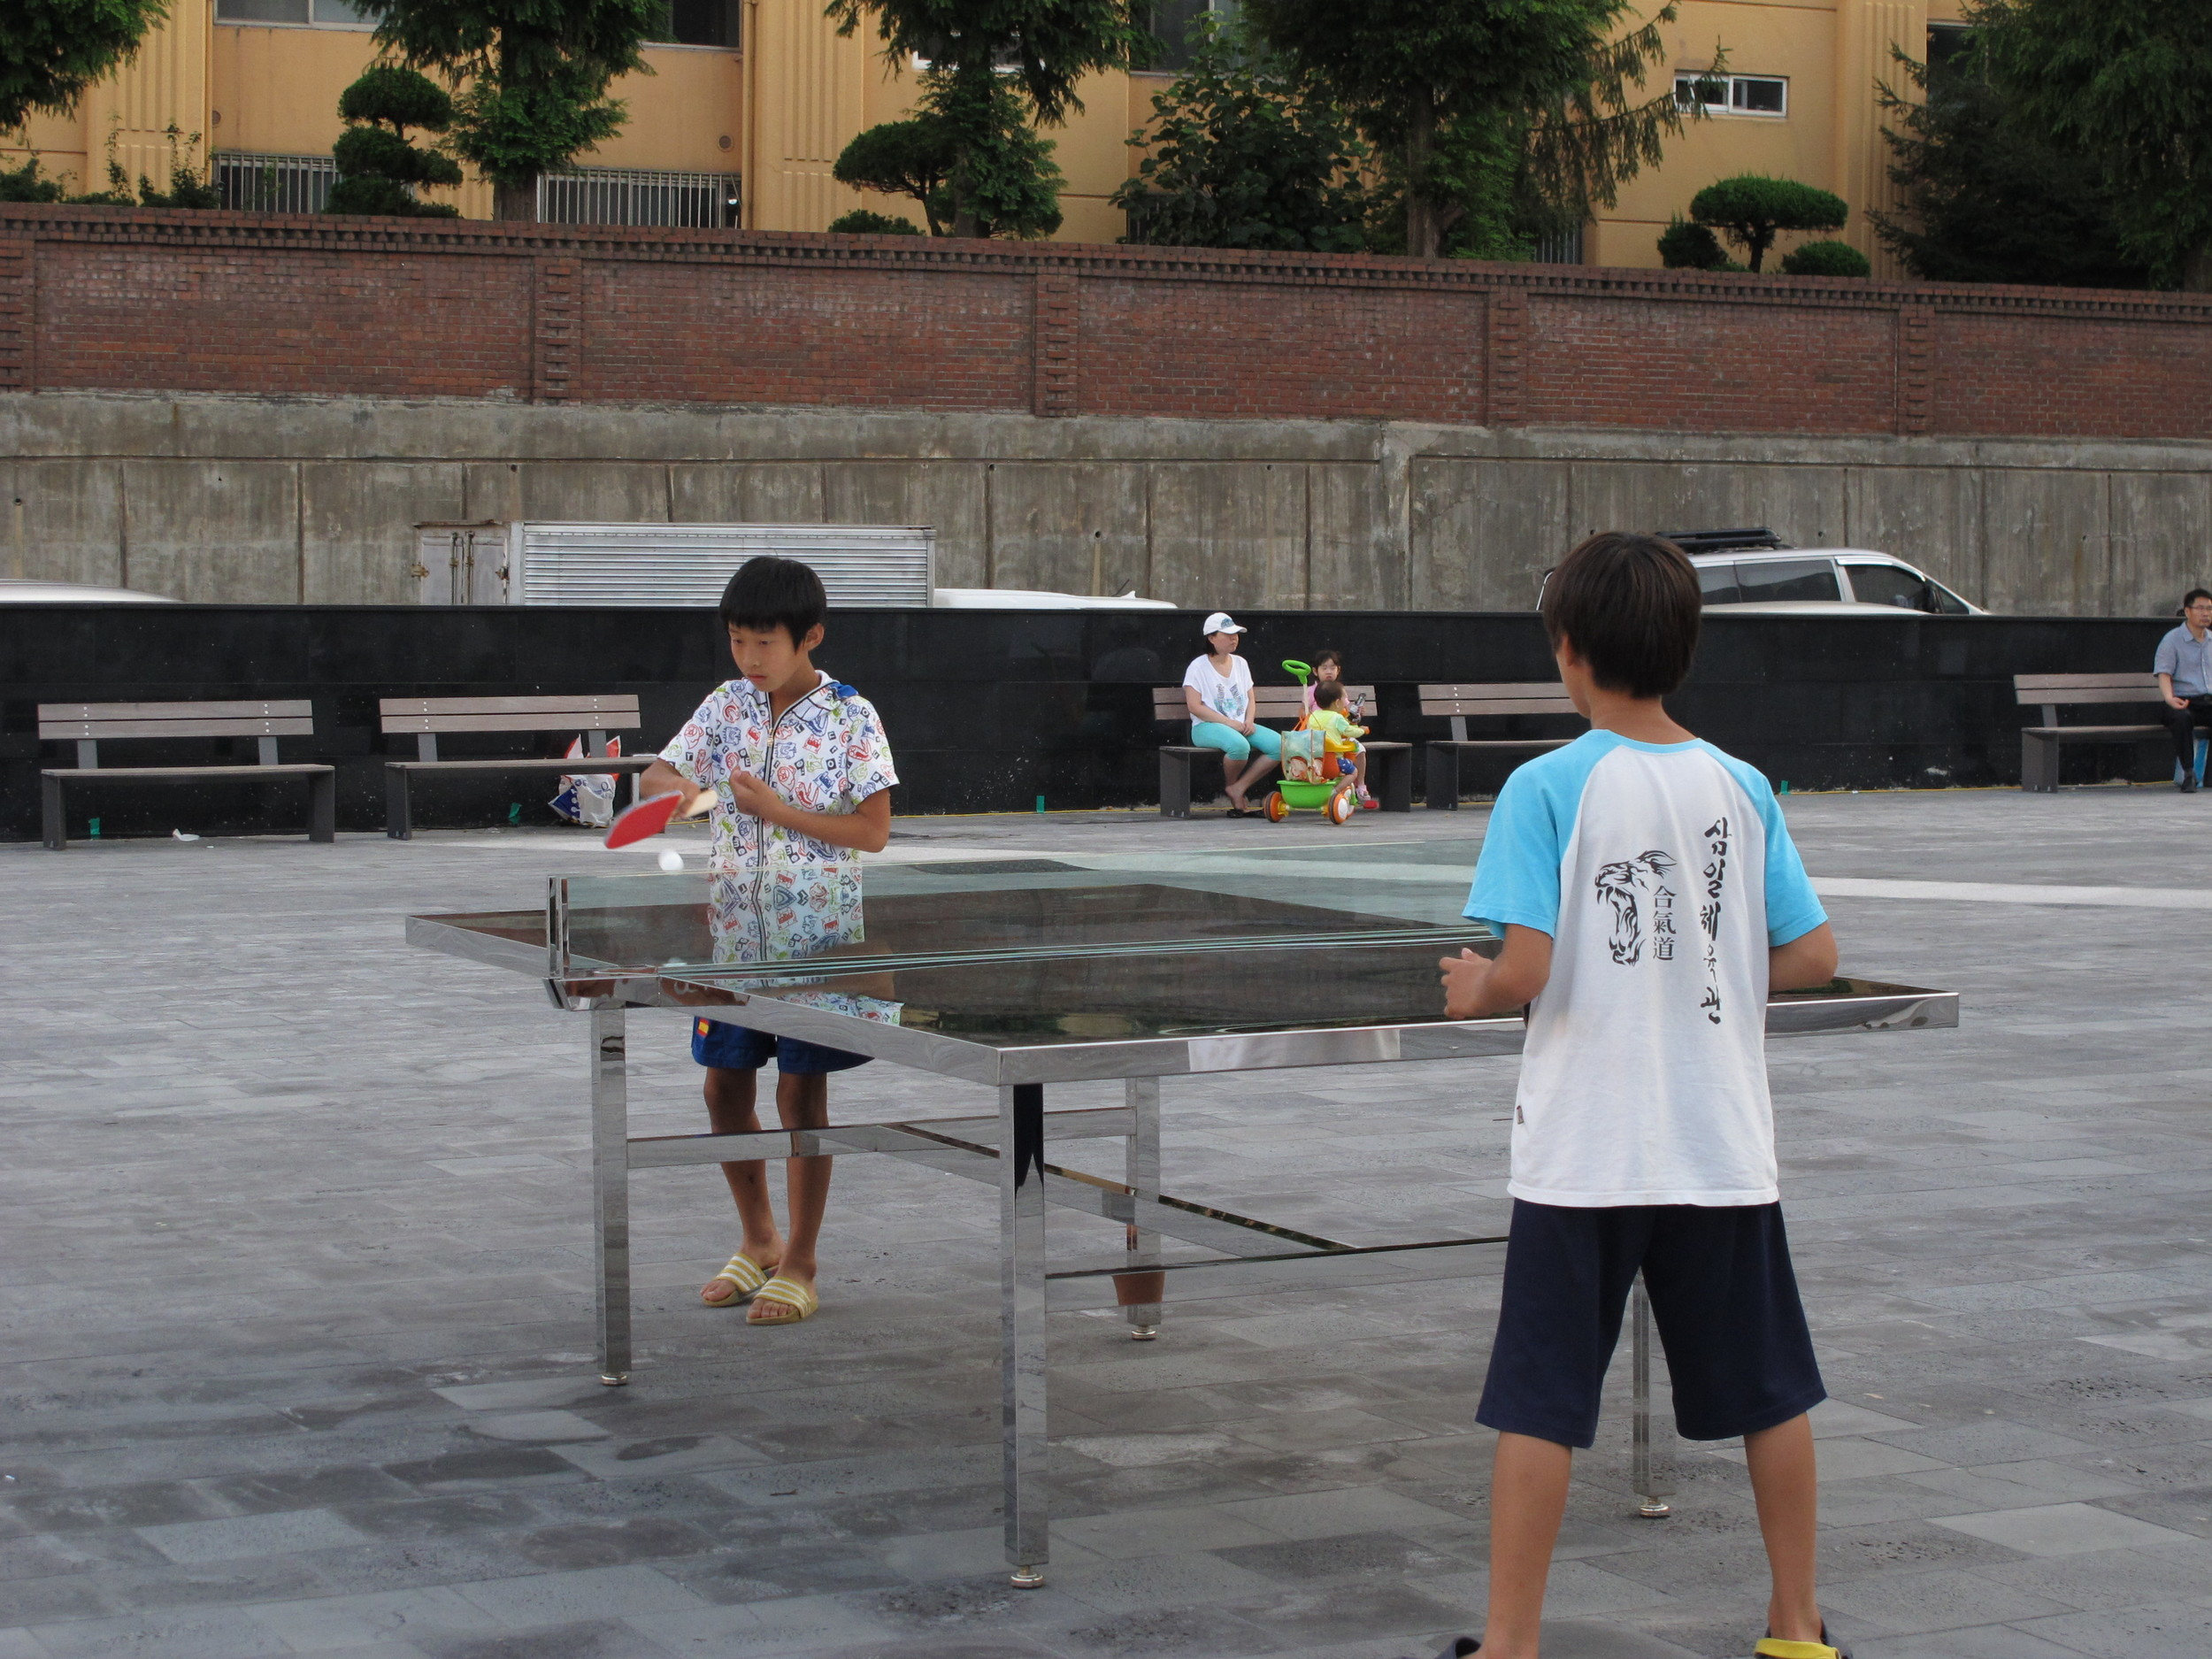 Children play with Rirkrit Tiravanija's artwork Untitled 2012 (who if not we should at least try to imagine the future, again) (remember Julius Koller) which consists of 14  pingpong tables with two nets each, referencing North and South Korea